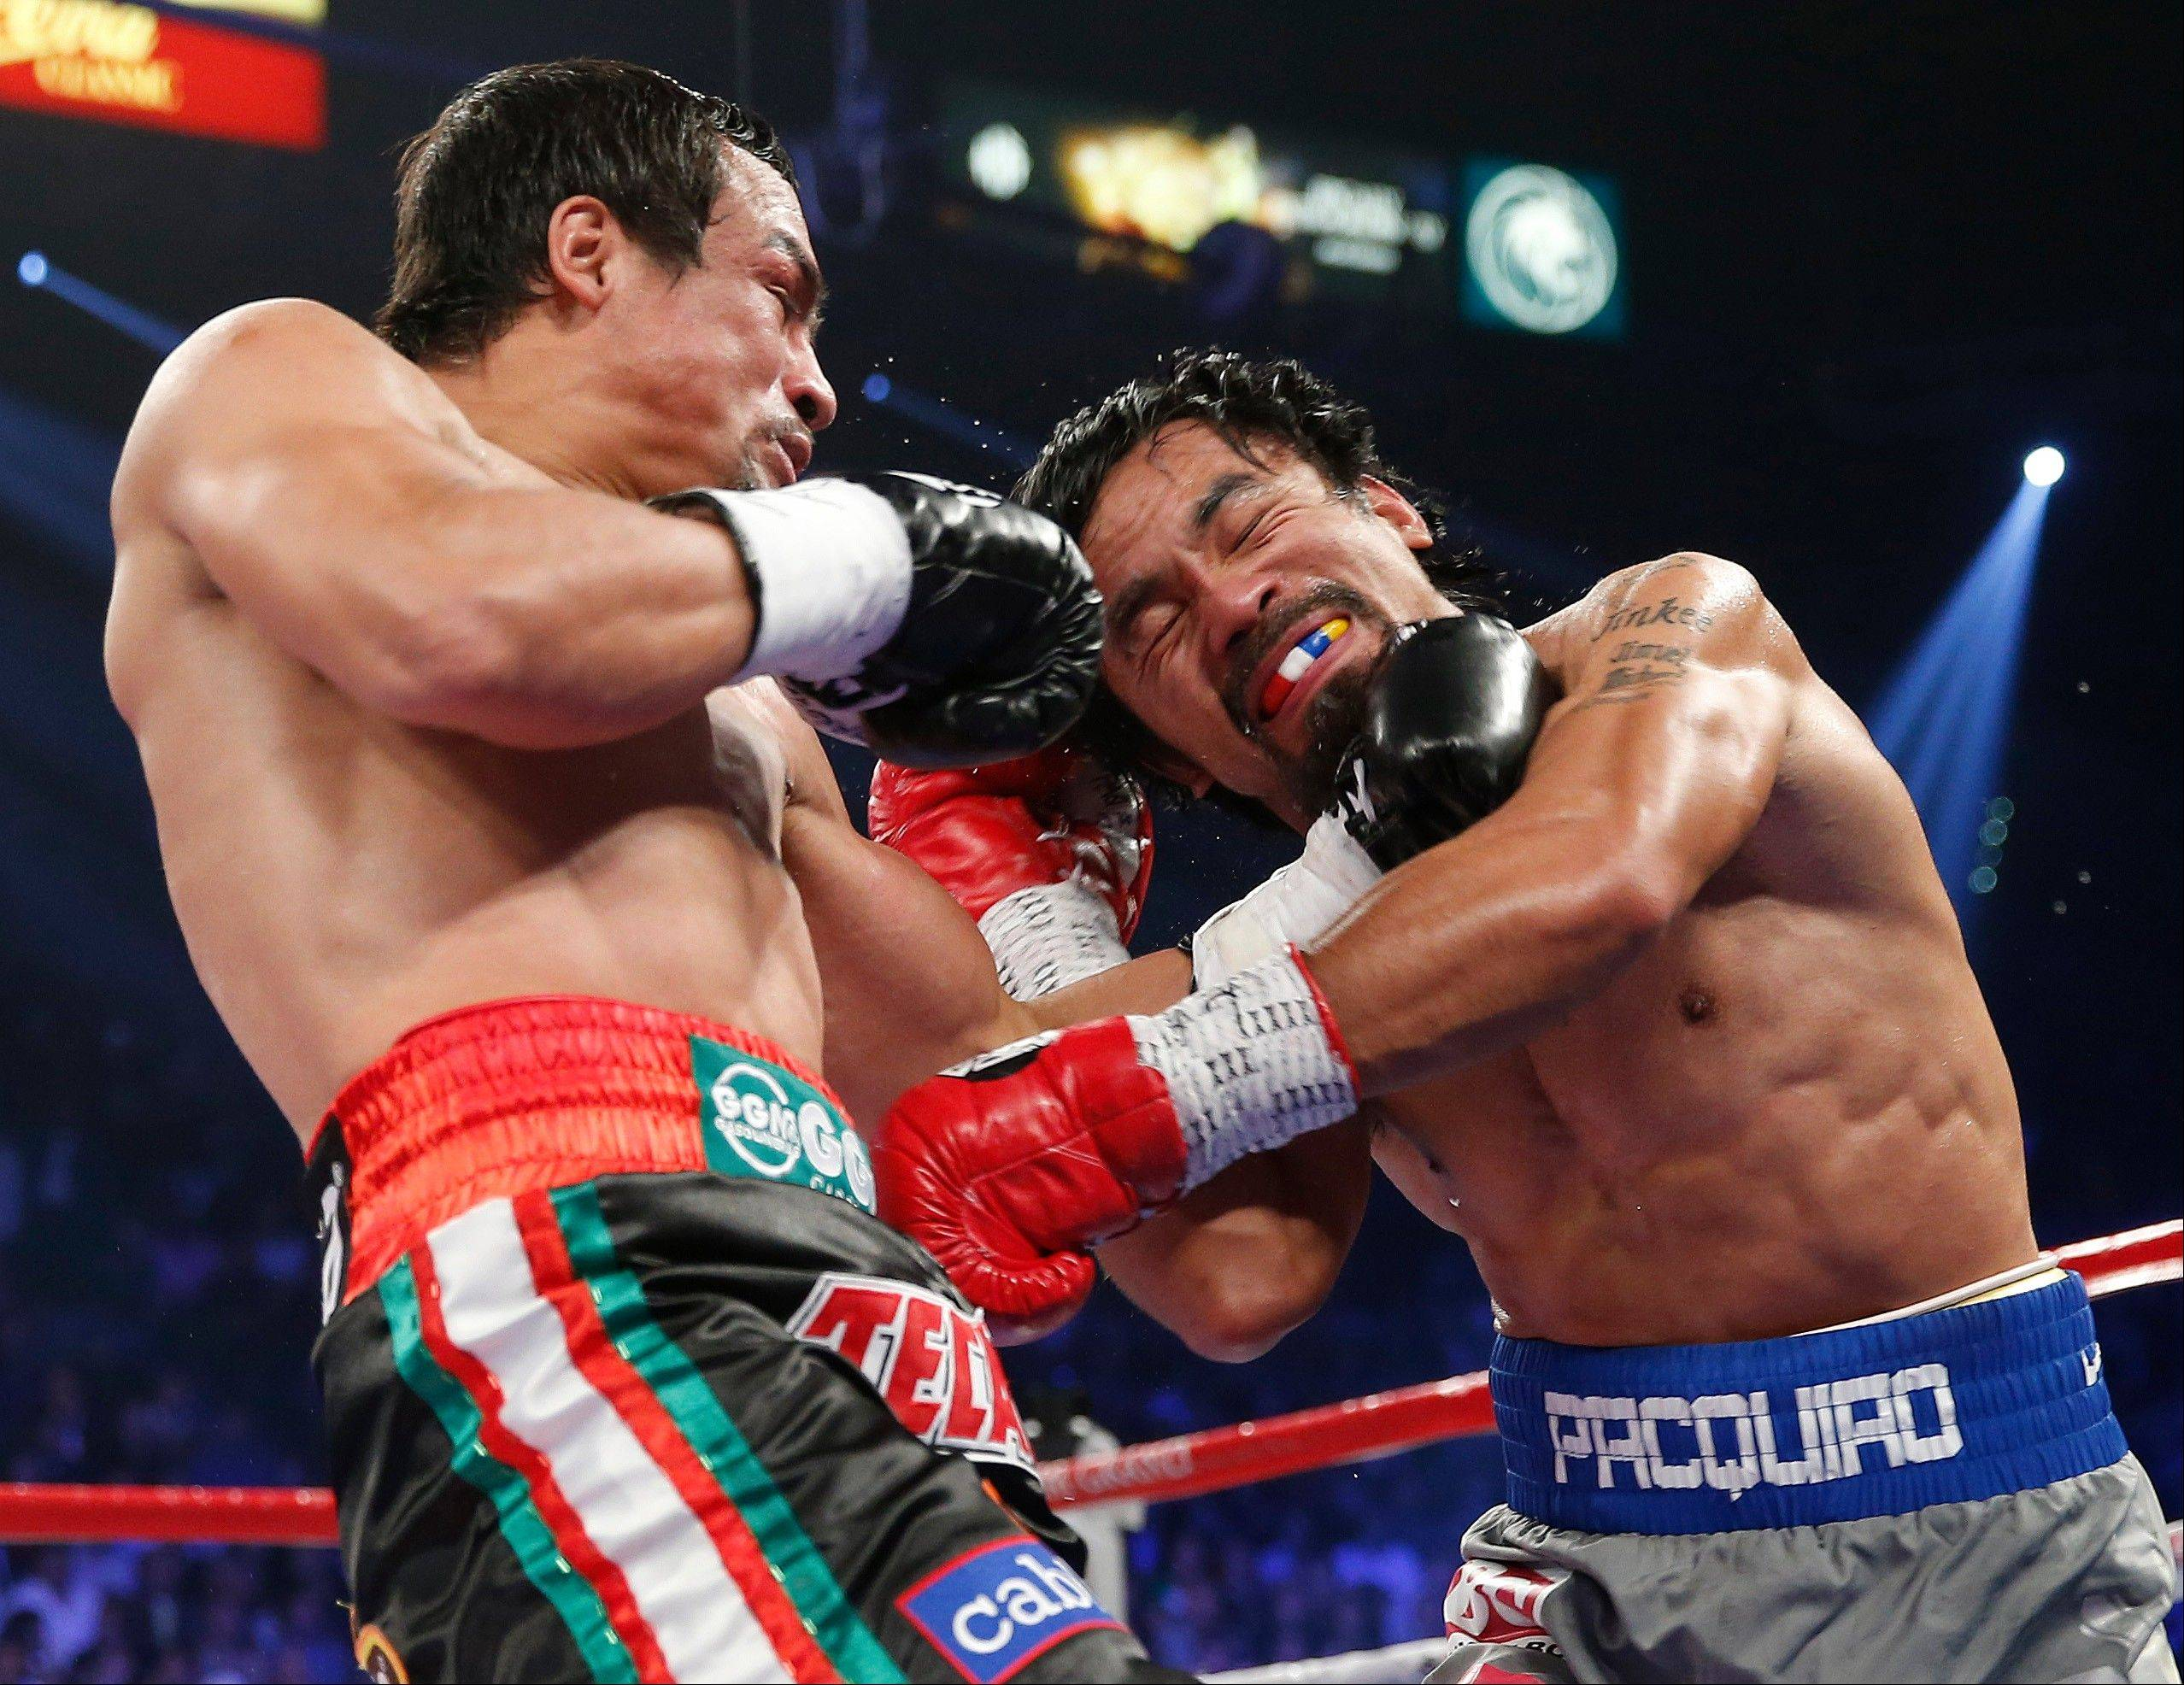 Juan Manuel Marquez, left, and Manny Pacquiao trade blows.